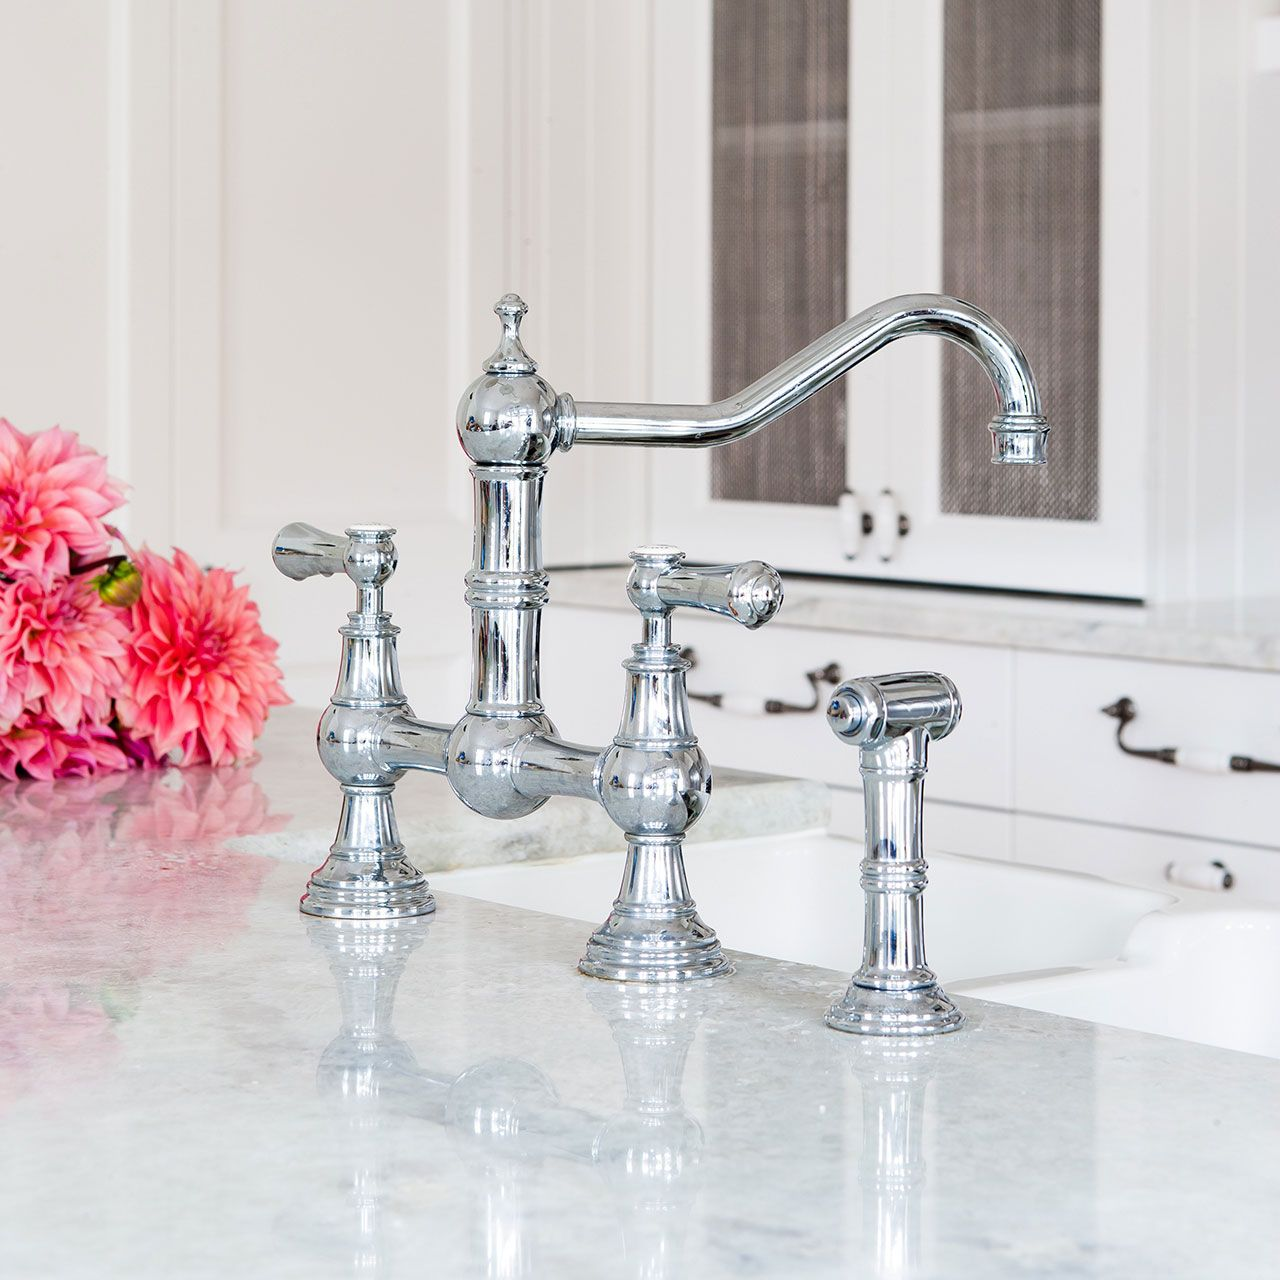 Perrin and Rowe 4756 Provence bridge tap with lever handles and ...